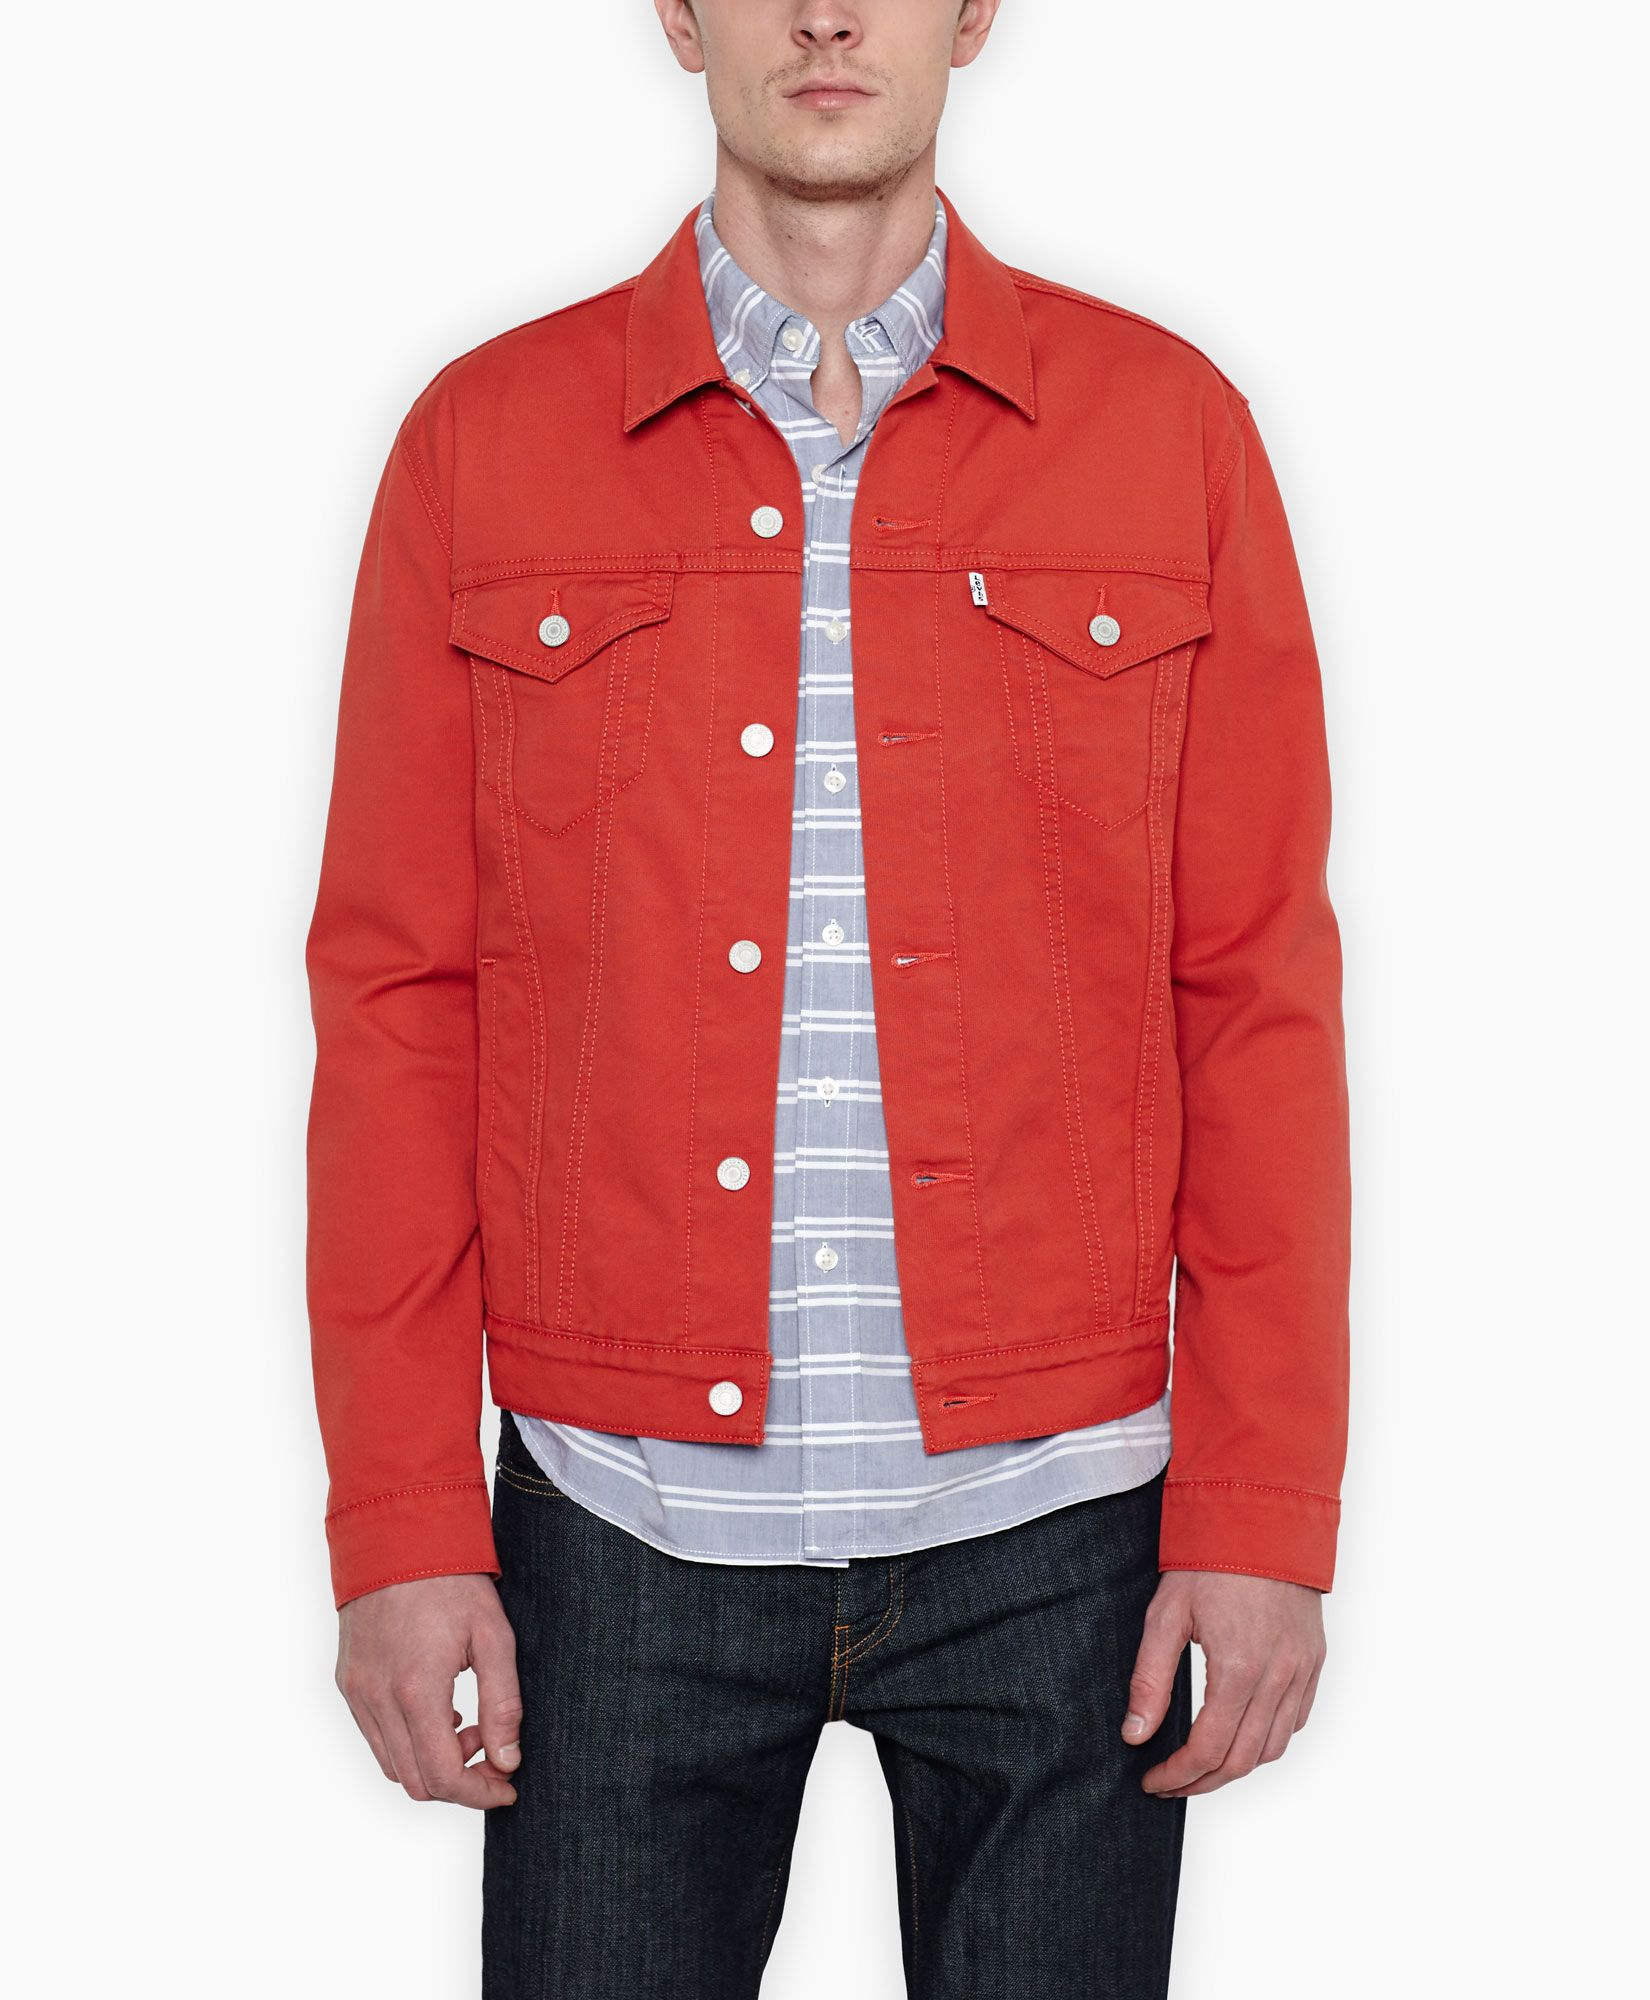 Levi's The Trucker Jacket Red Rock Bedford Cord The